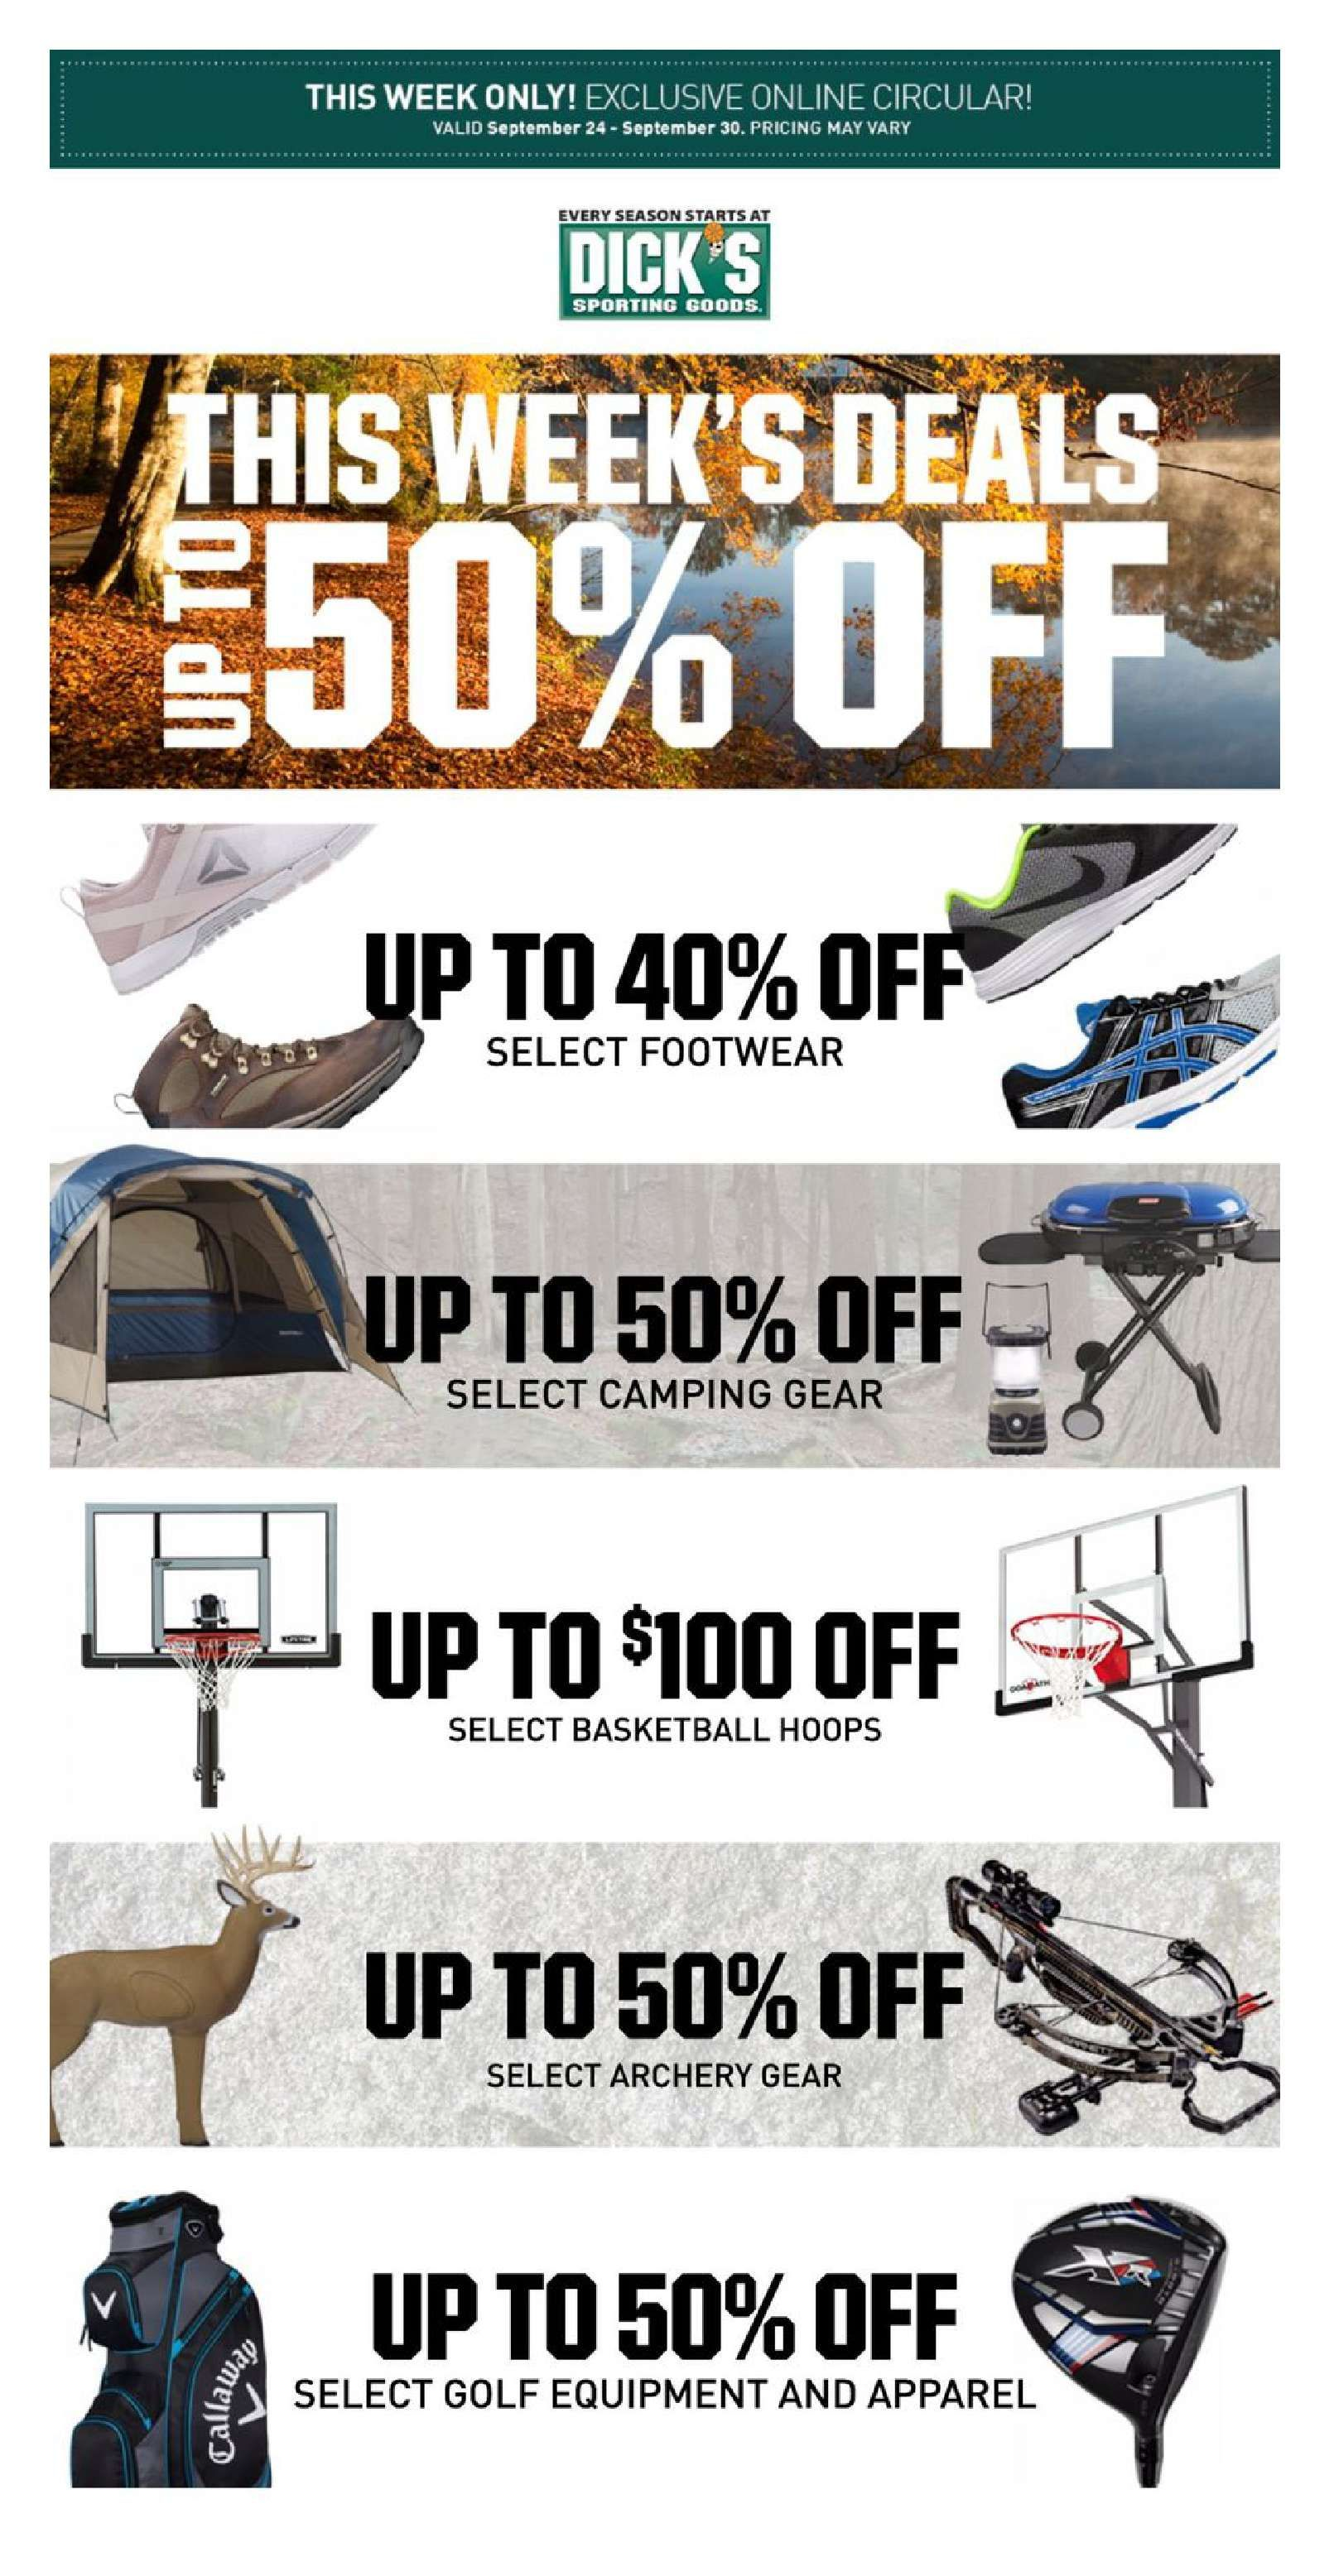 Dick sporting goods weekly ad — pic 15